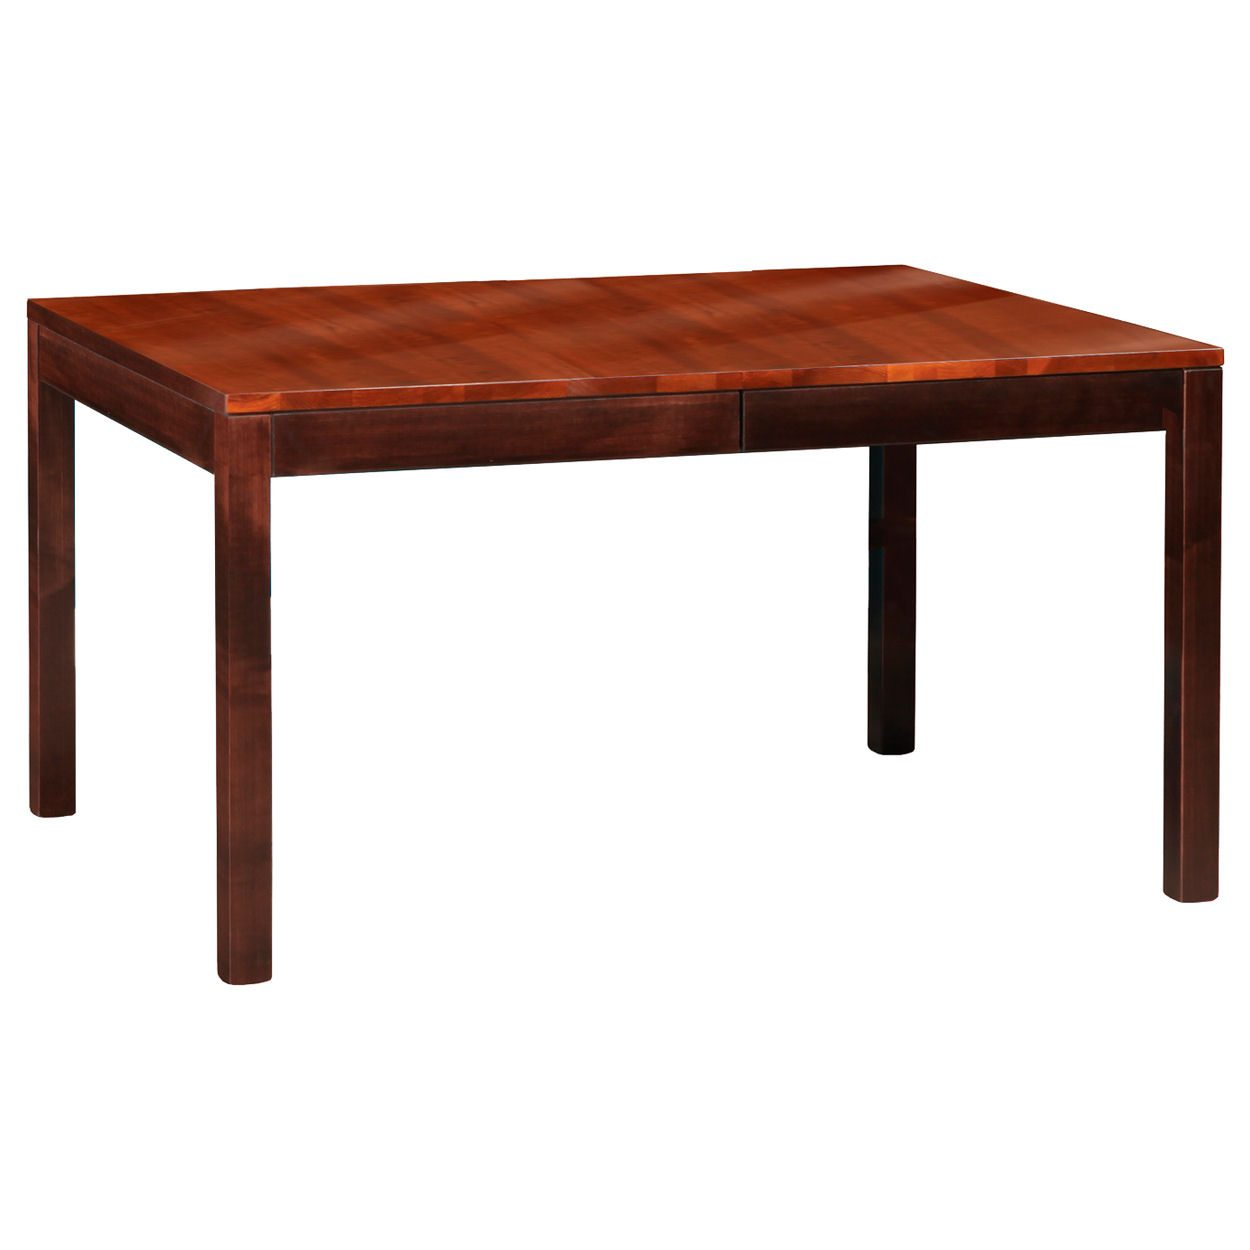 Lillie Dining Room Collection G19-20 Leg Dining Table